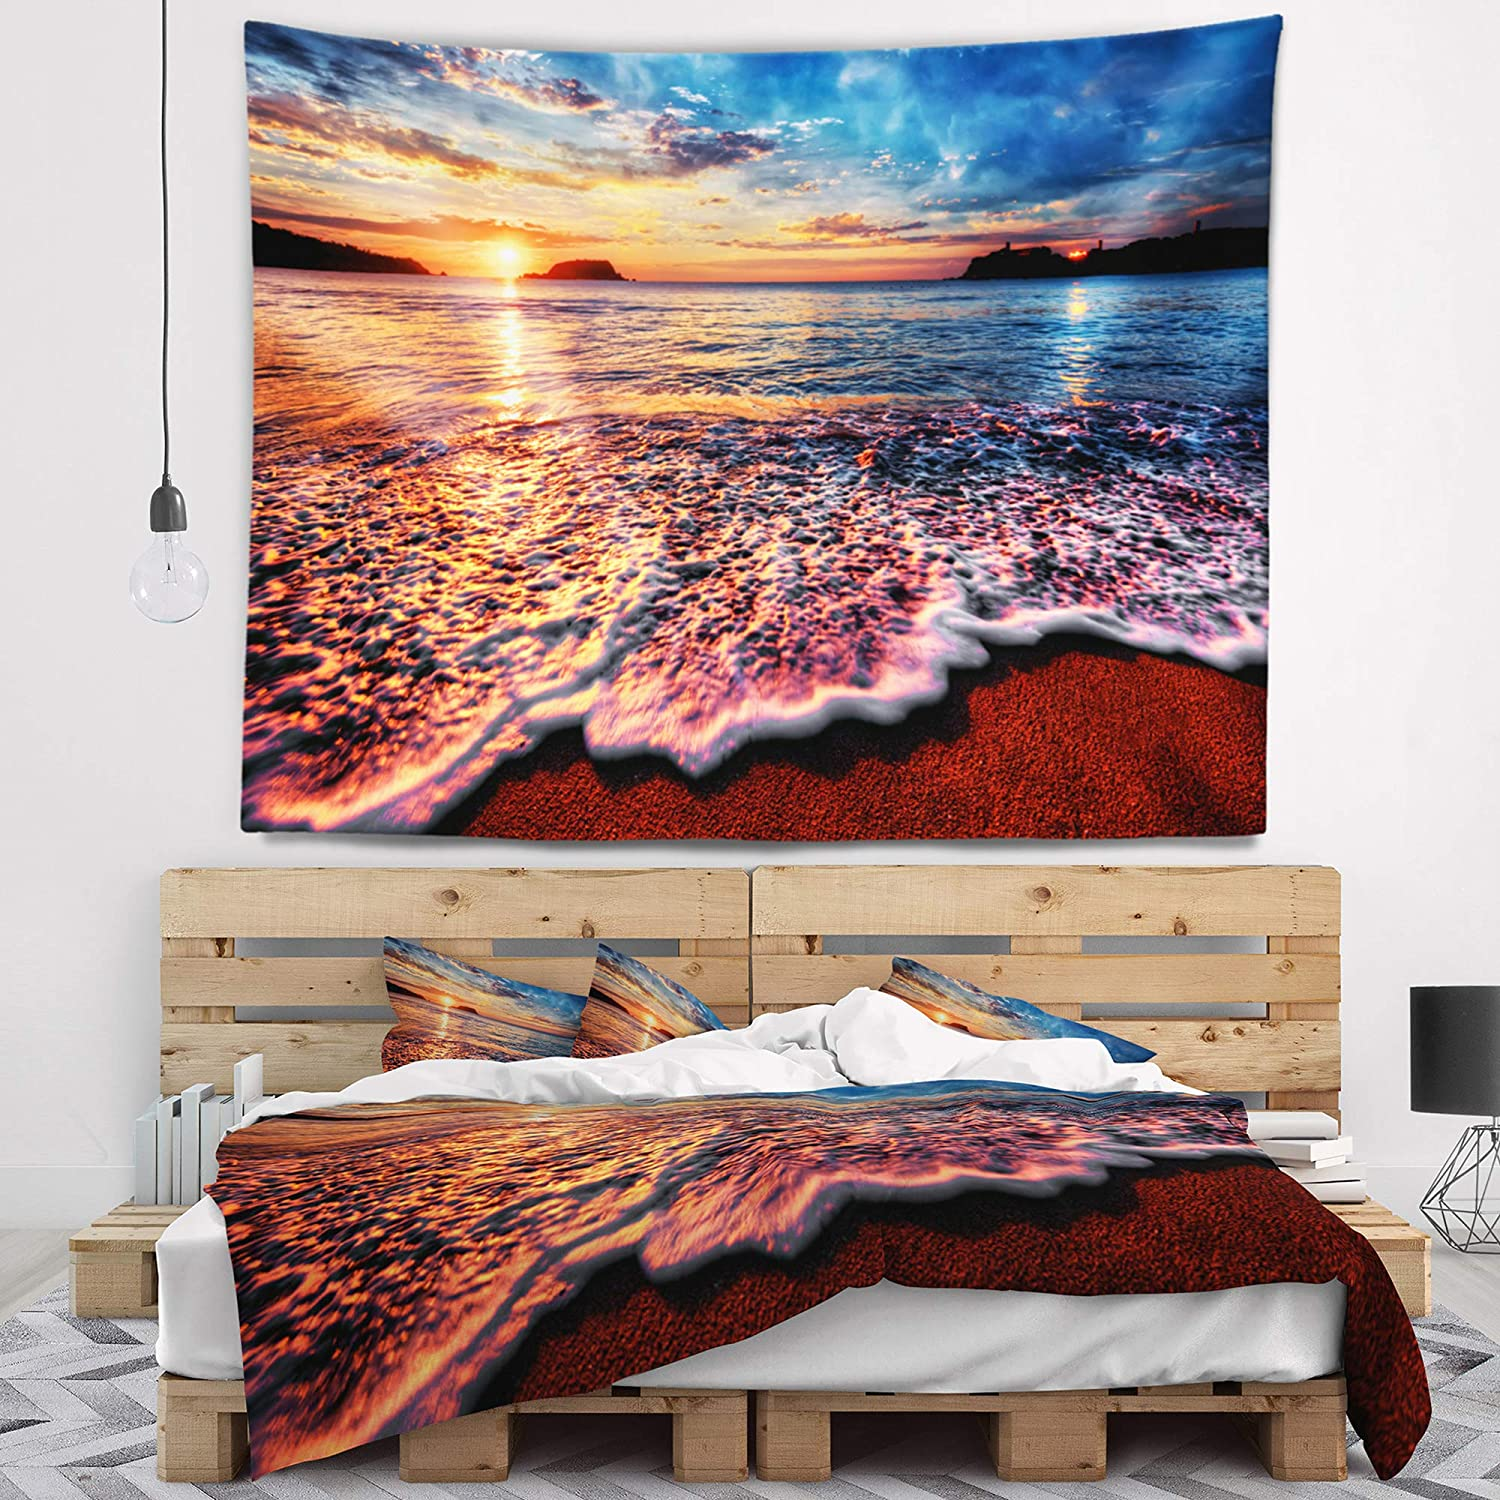 Created On Lightweight Polyester Fabric 80 In X 68 In Designart Tap10602 80 68 Peaceful Evening Beach View Seascape Blanket Décor Art For Home And Office Wall Tapestry X Large Tapestries Home Kitchen